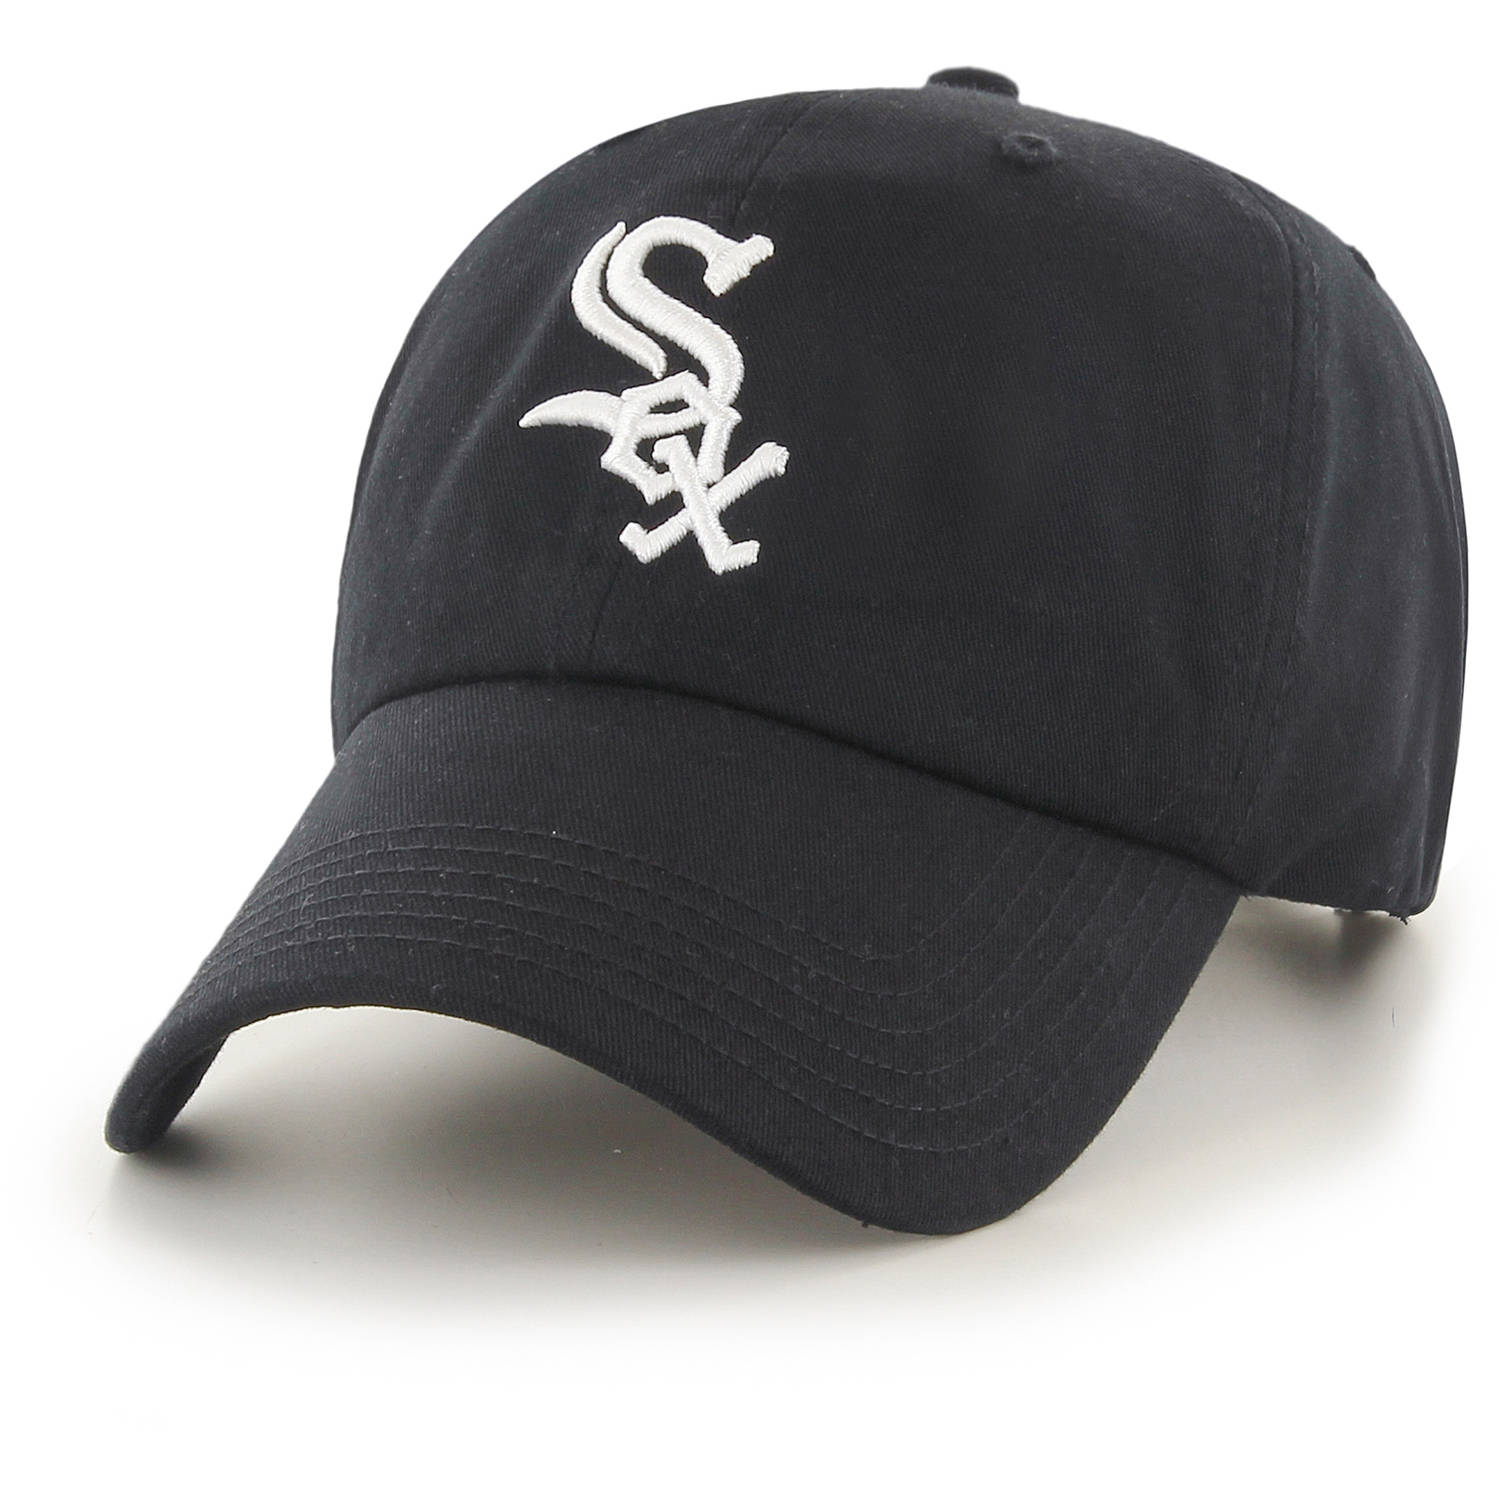 MLB Chicago White Sox Clean Up Cap / Hat by Fan Favorite